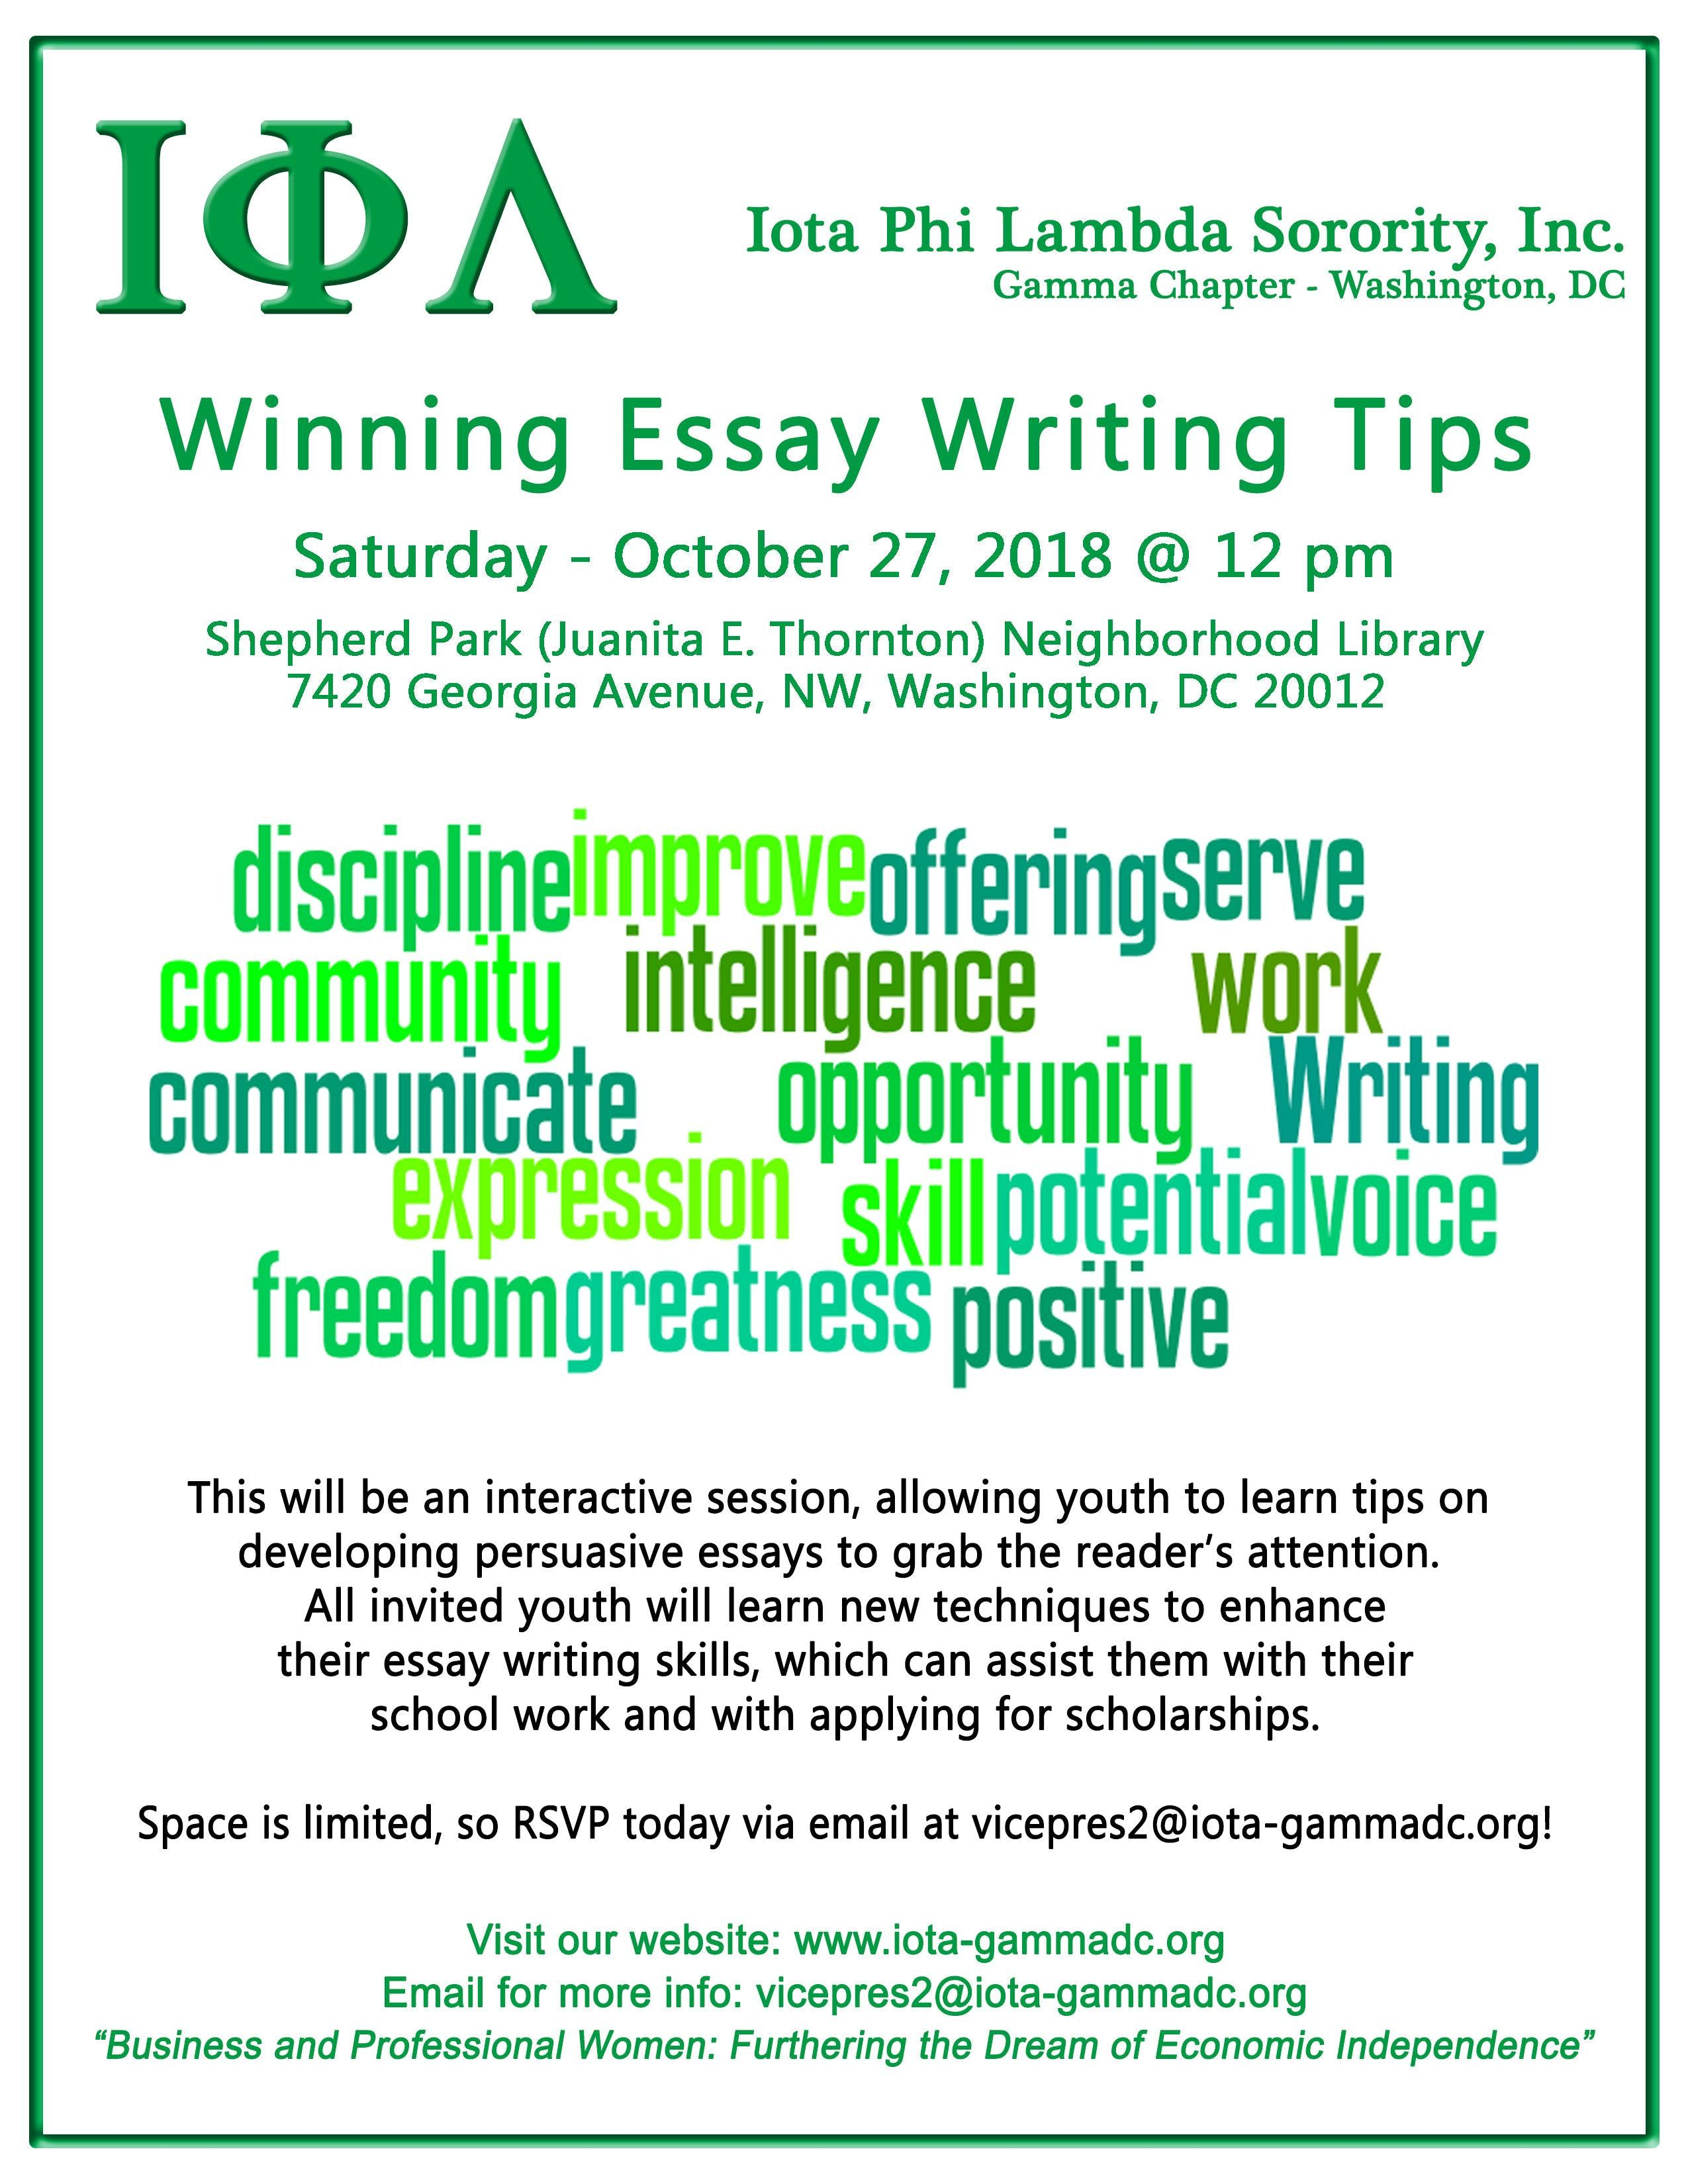 Winning Essay Writing Tips At Juanita E Thorntonshepherd Park  Winning Essay Writing Tips